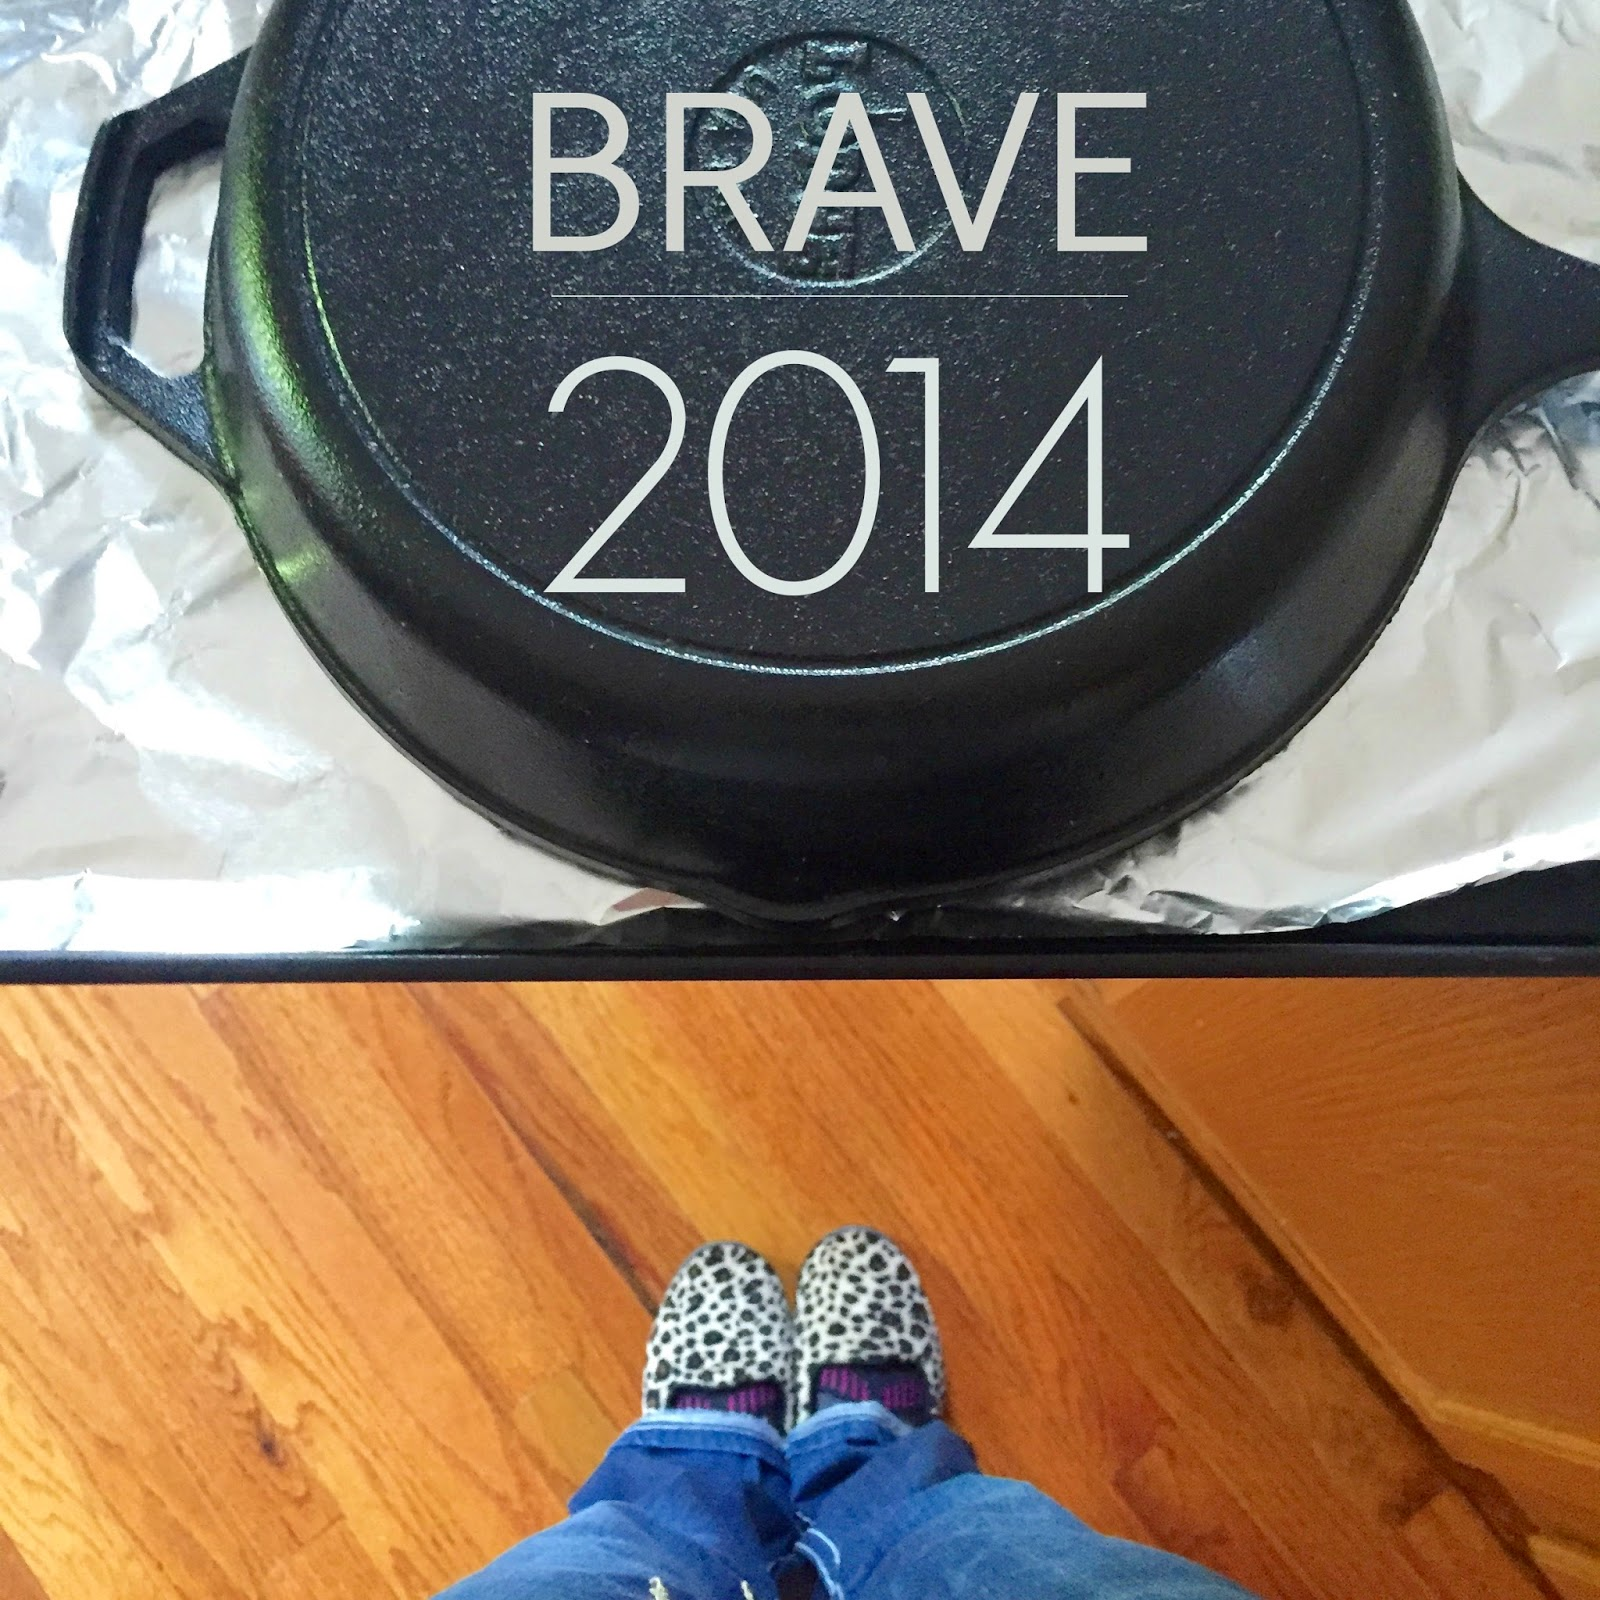 My Own Little Word - Brave 2014